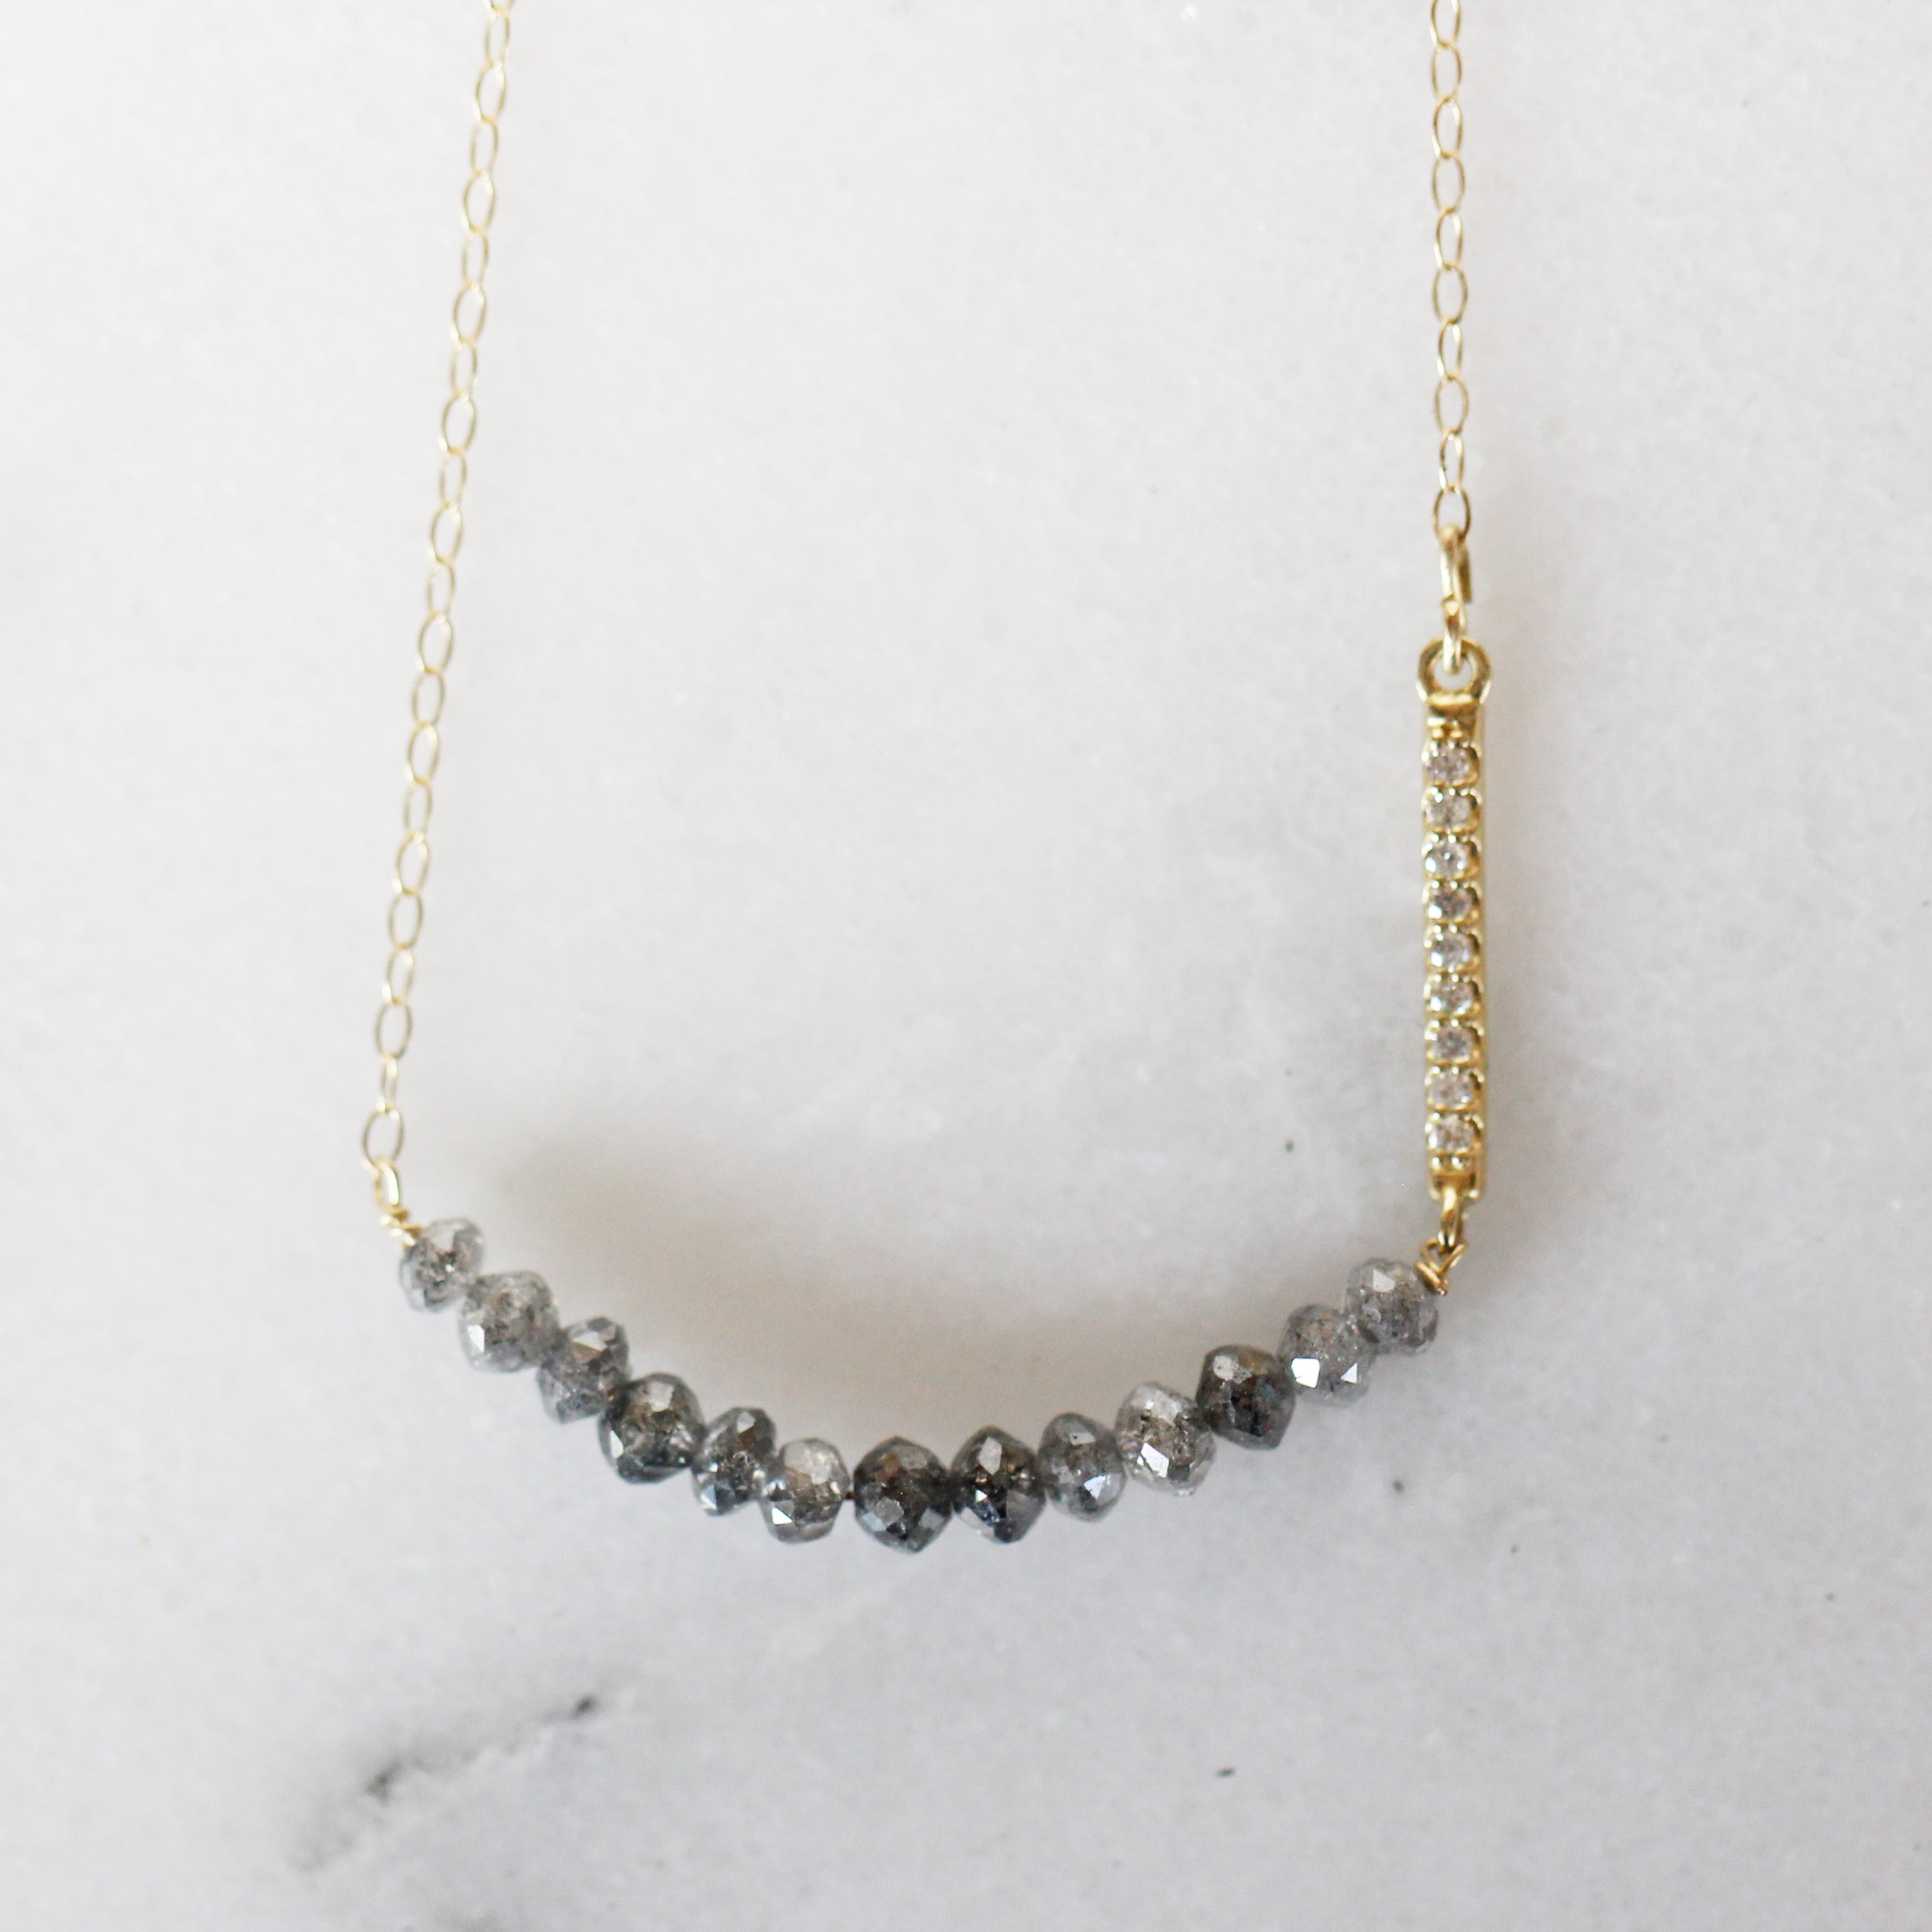 Brielle - Celestial and Clear Diamond in 14k Yellow Gold Necklace - Ready to Ship - Celestial Diamonds ® by Midwinter Co.